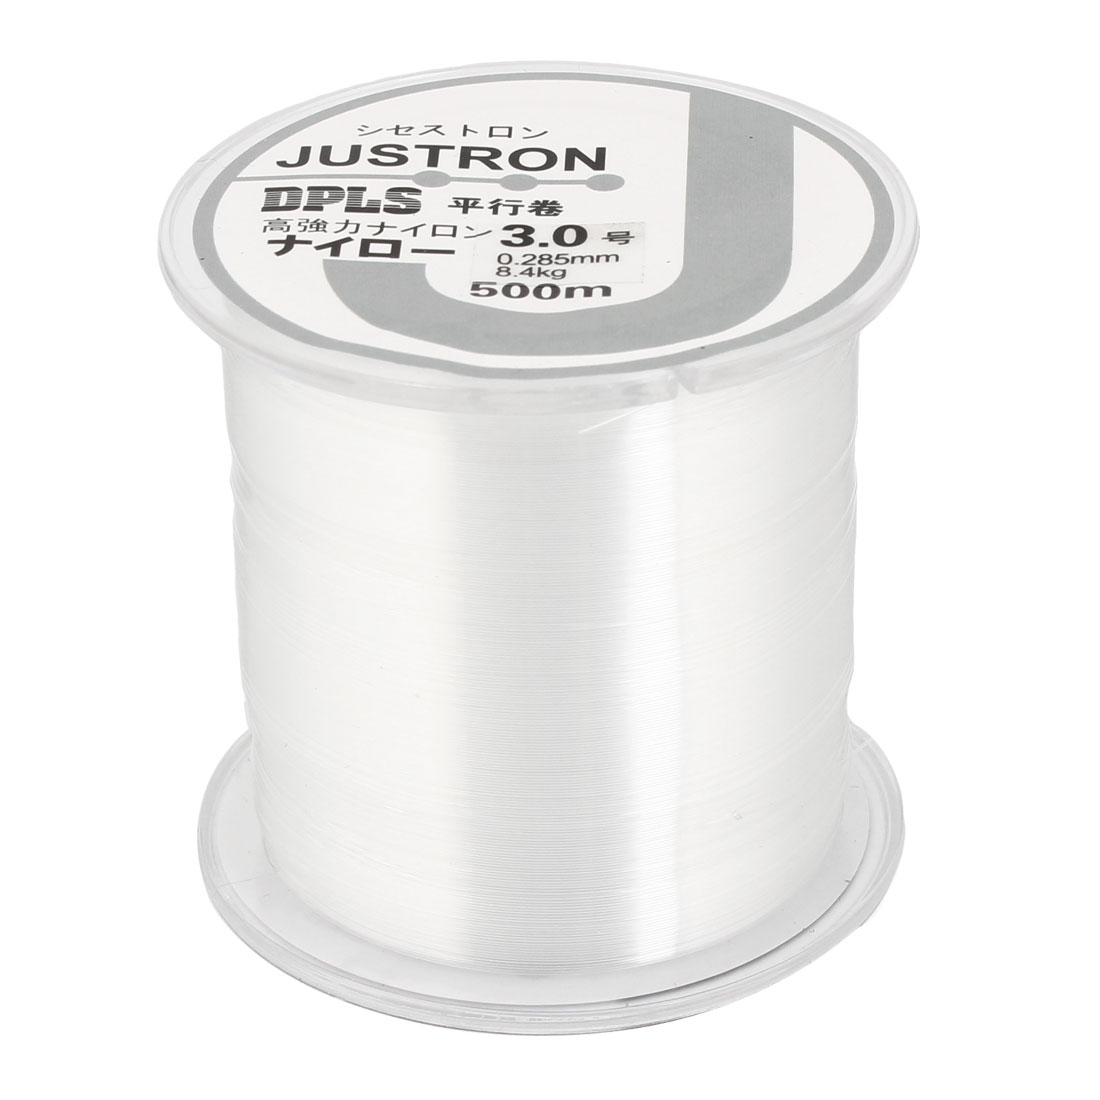 3.0# 0.285mm Diameter 500M Thread 8.4Kg 18.5 lb Fishing Line Spool Clear